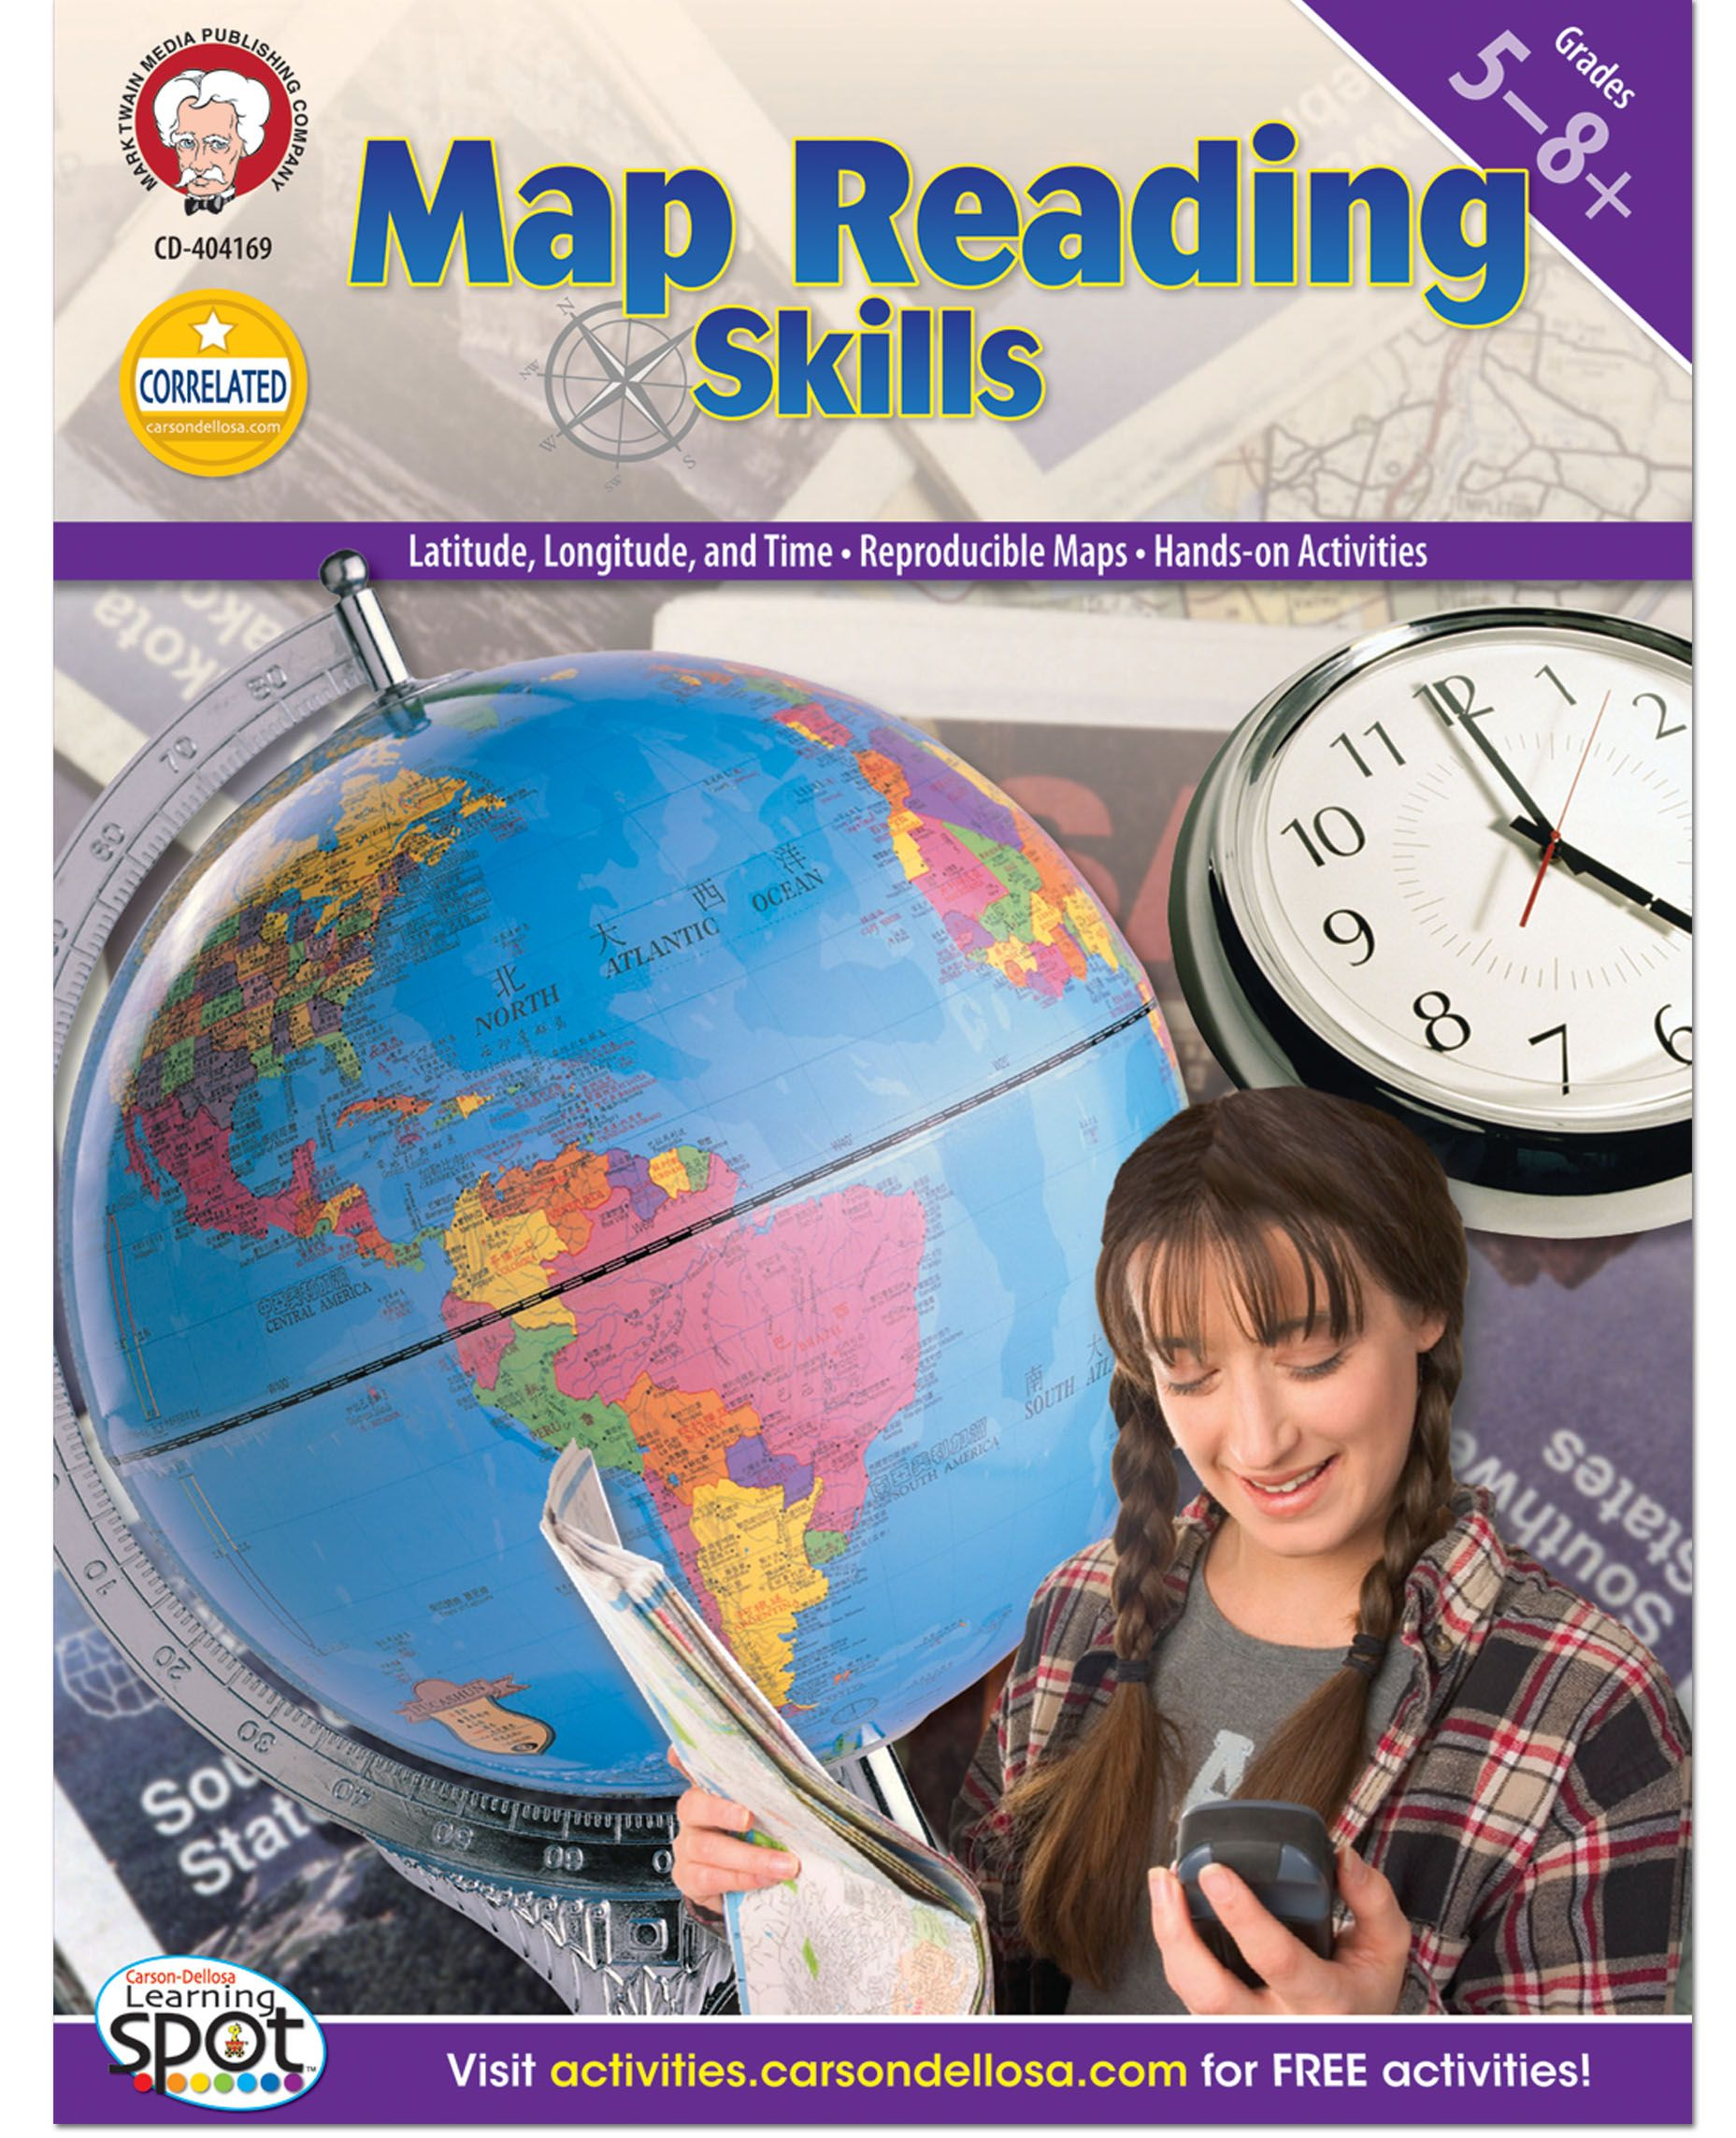 Map Reading Skills Is A Great Way To Reinforce Geography Lessons While Also Developing Map